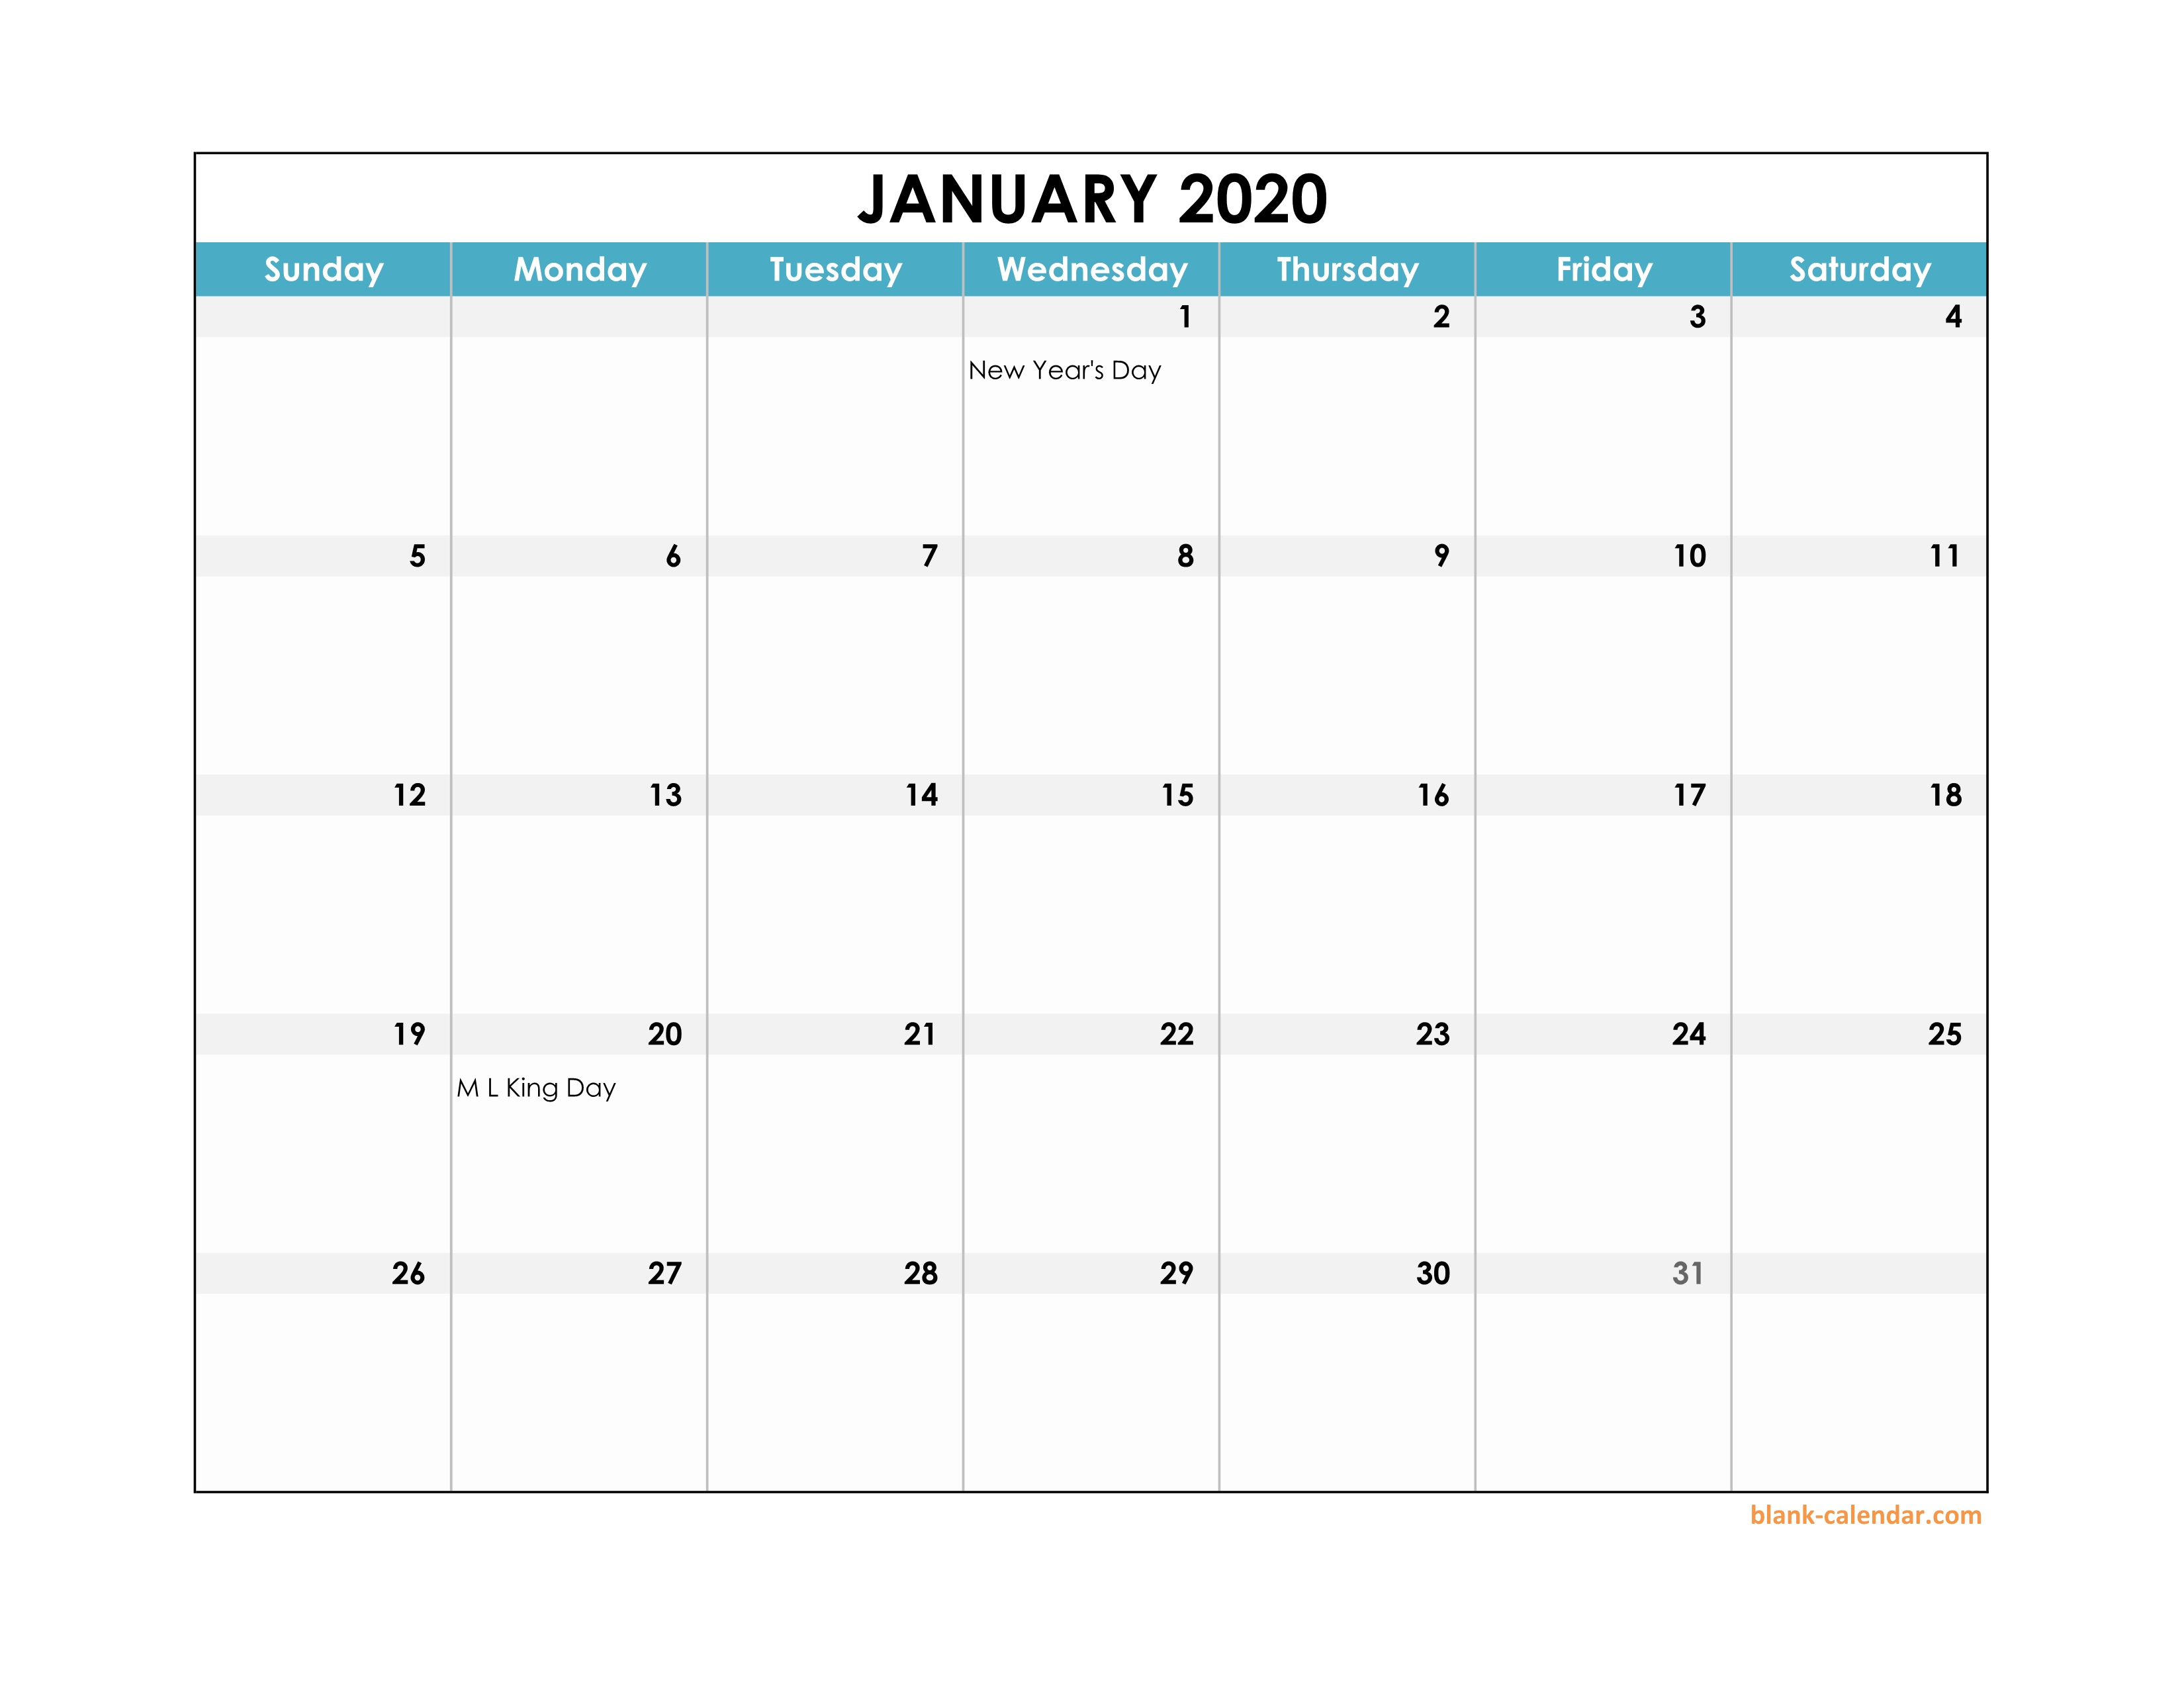 Calendar 2020 With Holidays Excel  Bolan.horizonconsulting.co with regard to Wincalendar January 2020